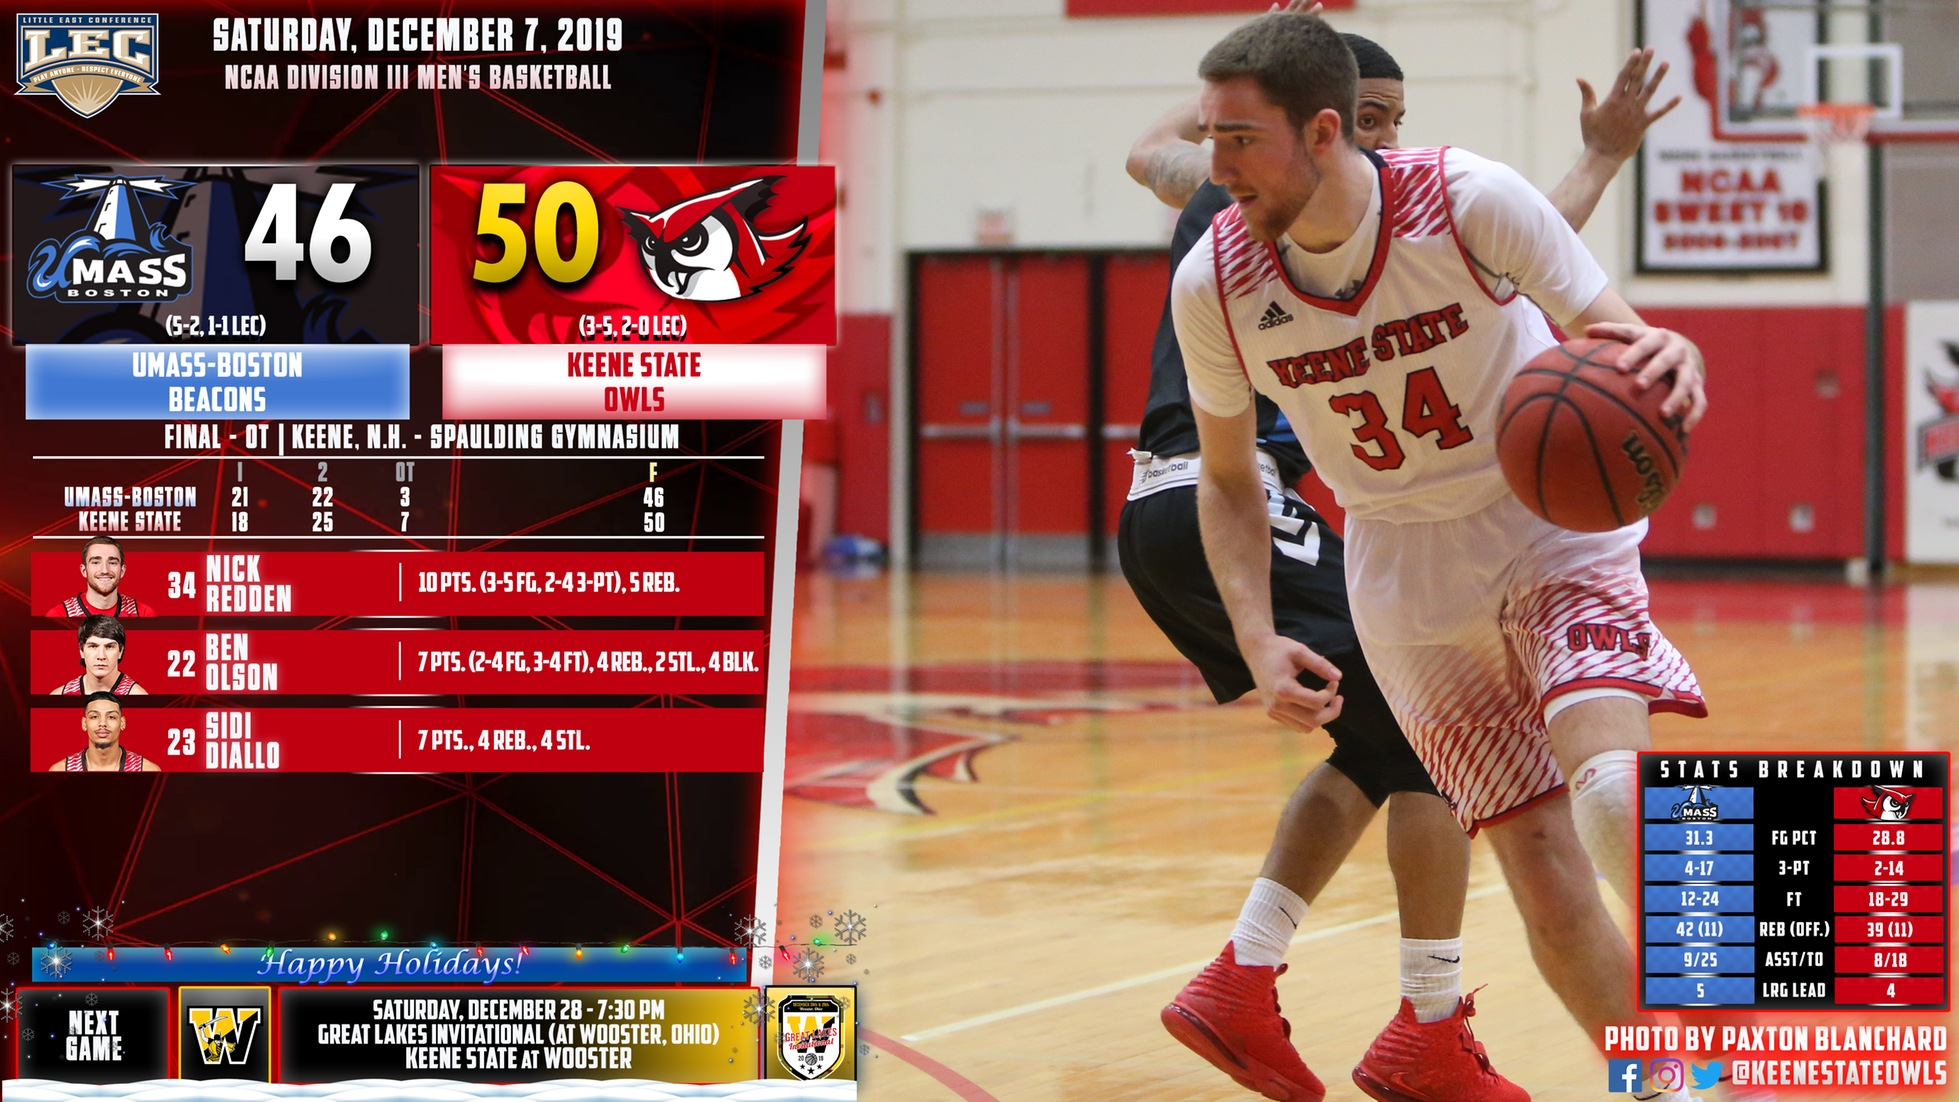 Keene State Uses Defense to Grind Past UMass-Boston in Overtime, 50-46